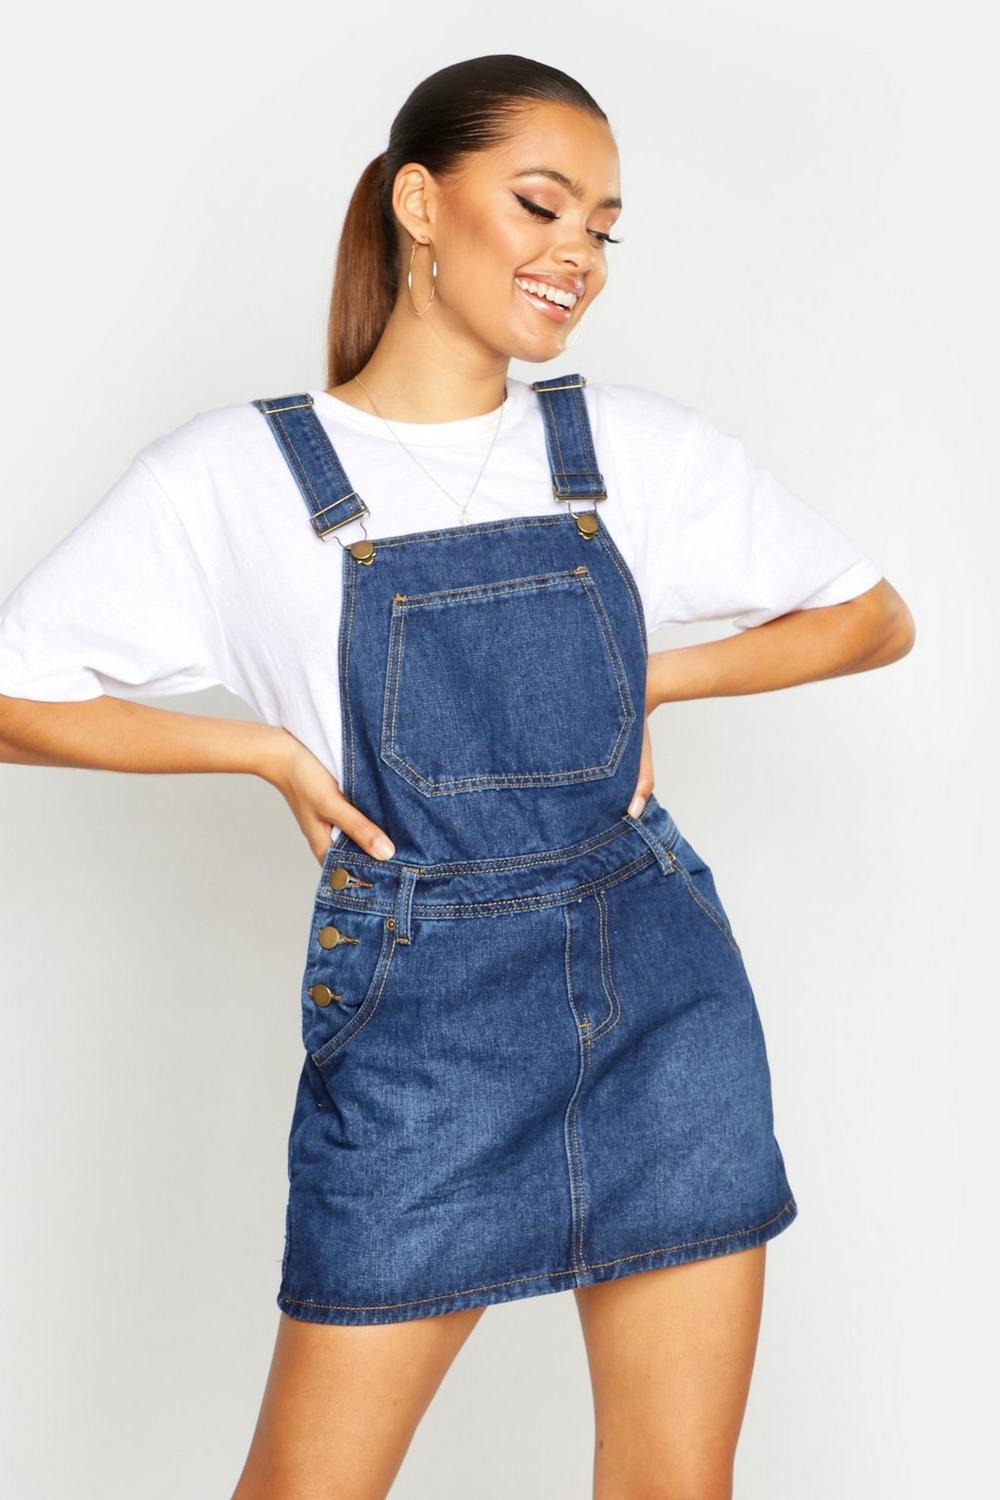 New For Taylor Johnston, A Quote By Chuck Close Sums Up The Inspiration Behind Bostonbased Womens Workwear Gamine  One Of The Most Important Things We Did In Creating This Dungaree Is Using The Best